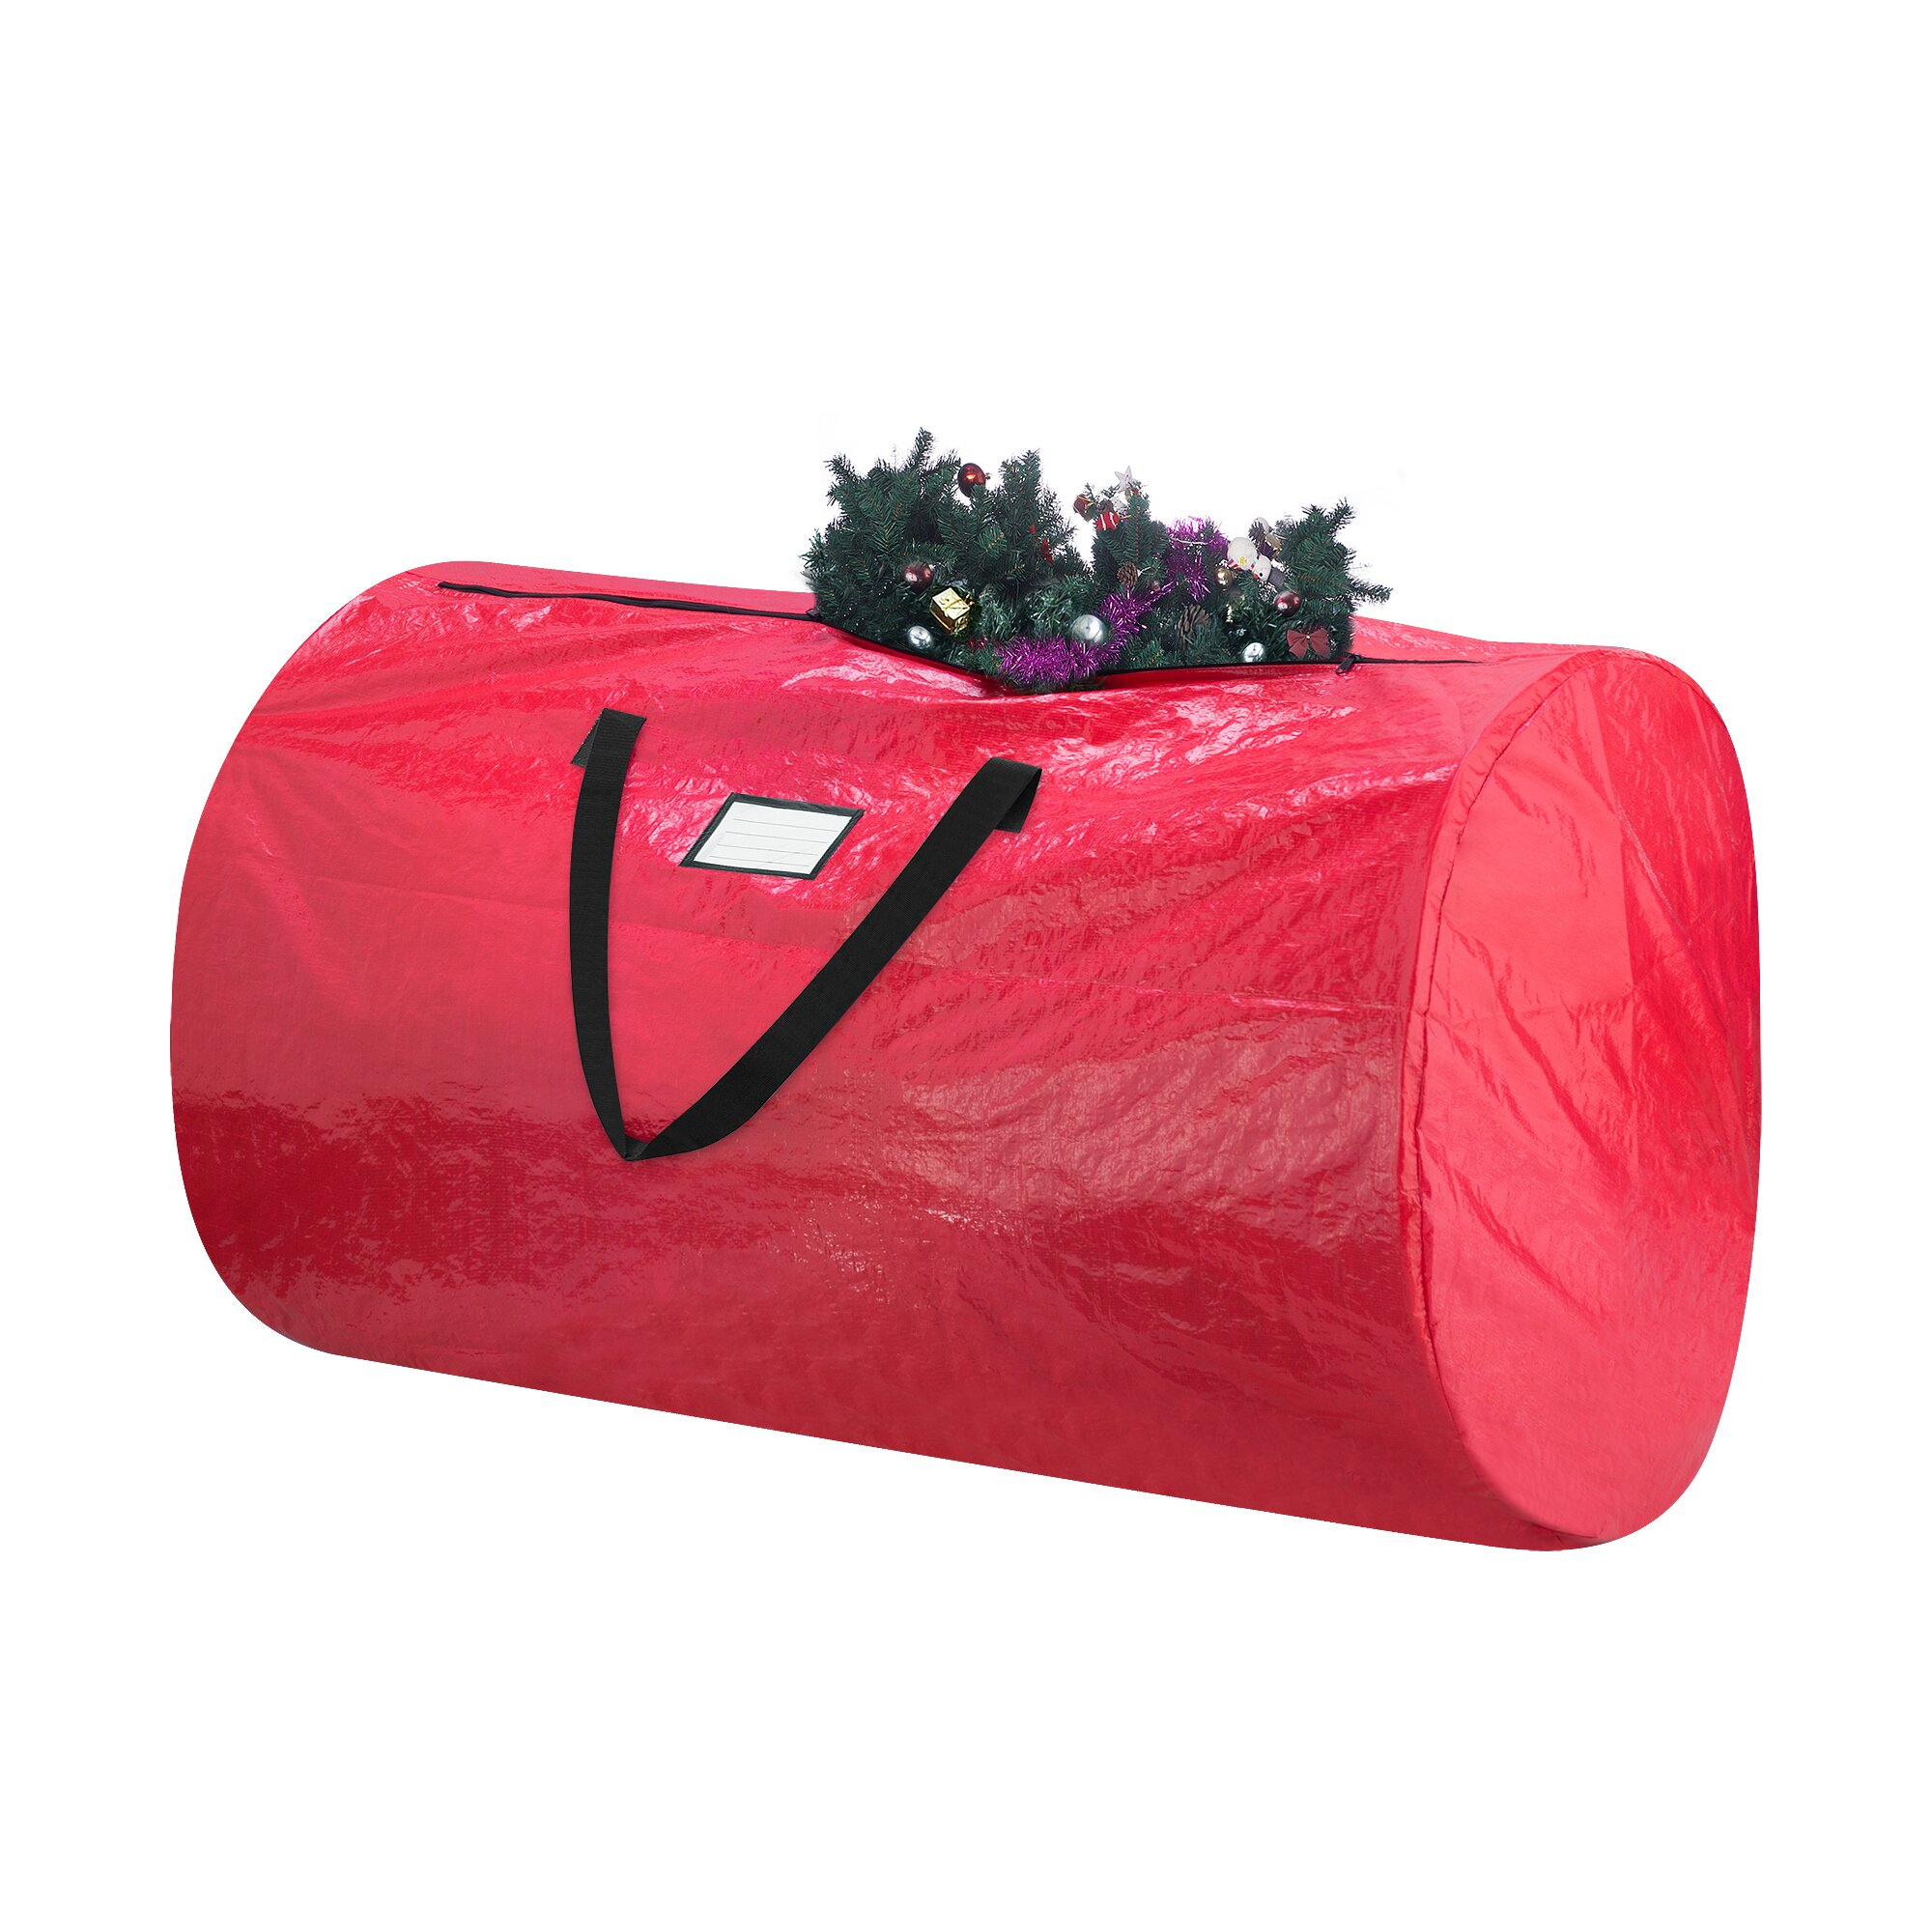 Storage bags for christmas trees - Elf Stor Deluxe Christmas Tree Storage Bag And Canvas Wreath Bag